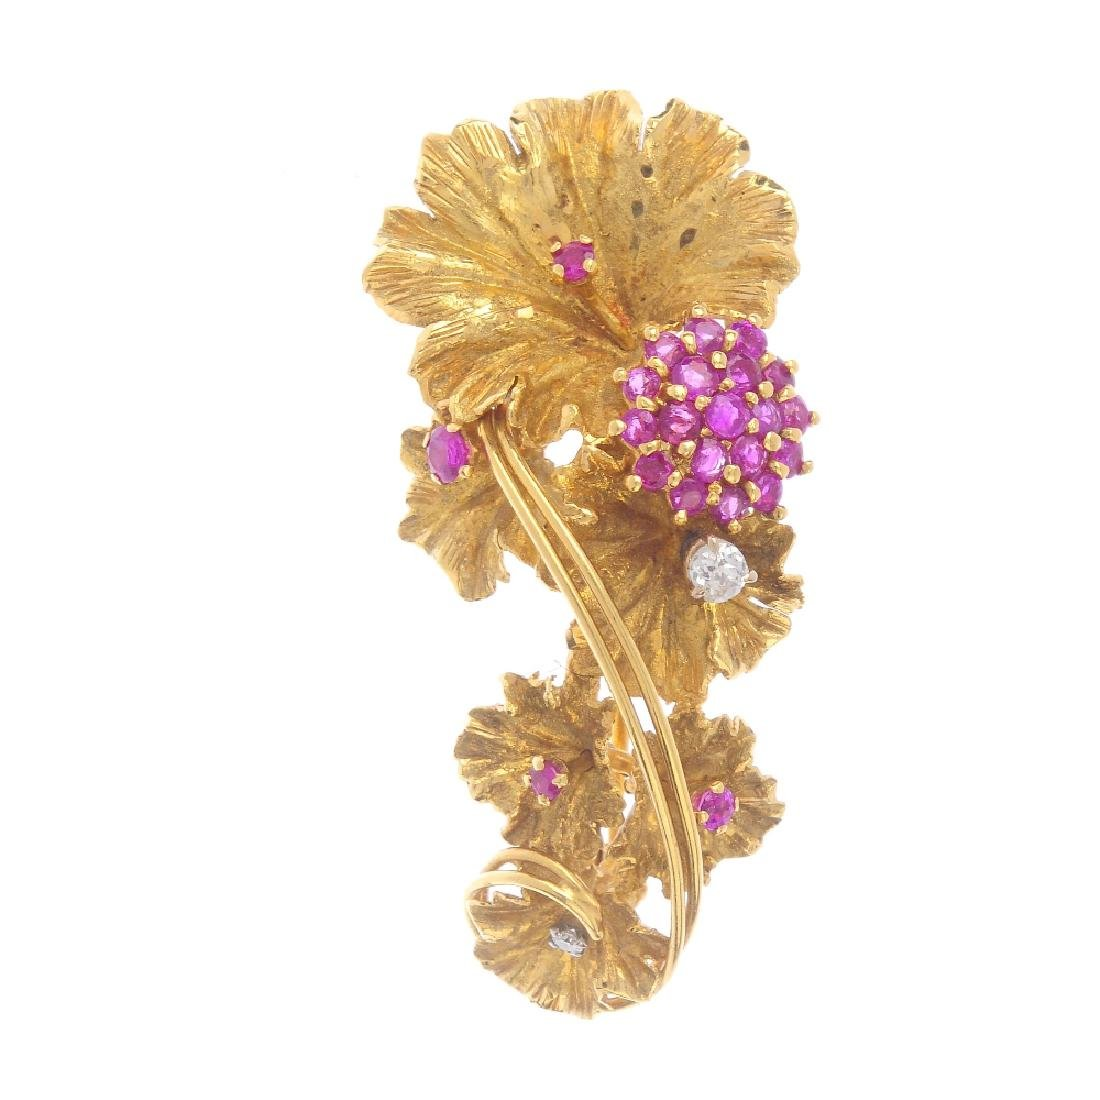 A 1960s 18ct gold diamond and ruby brooch. The